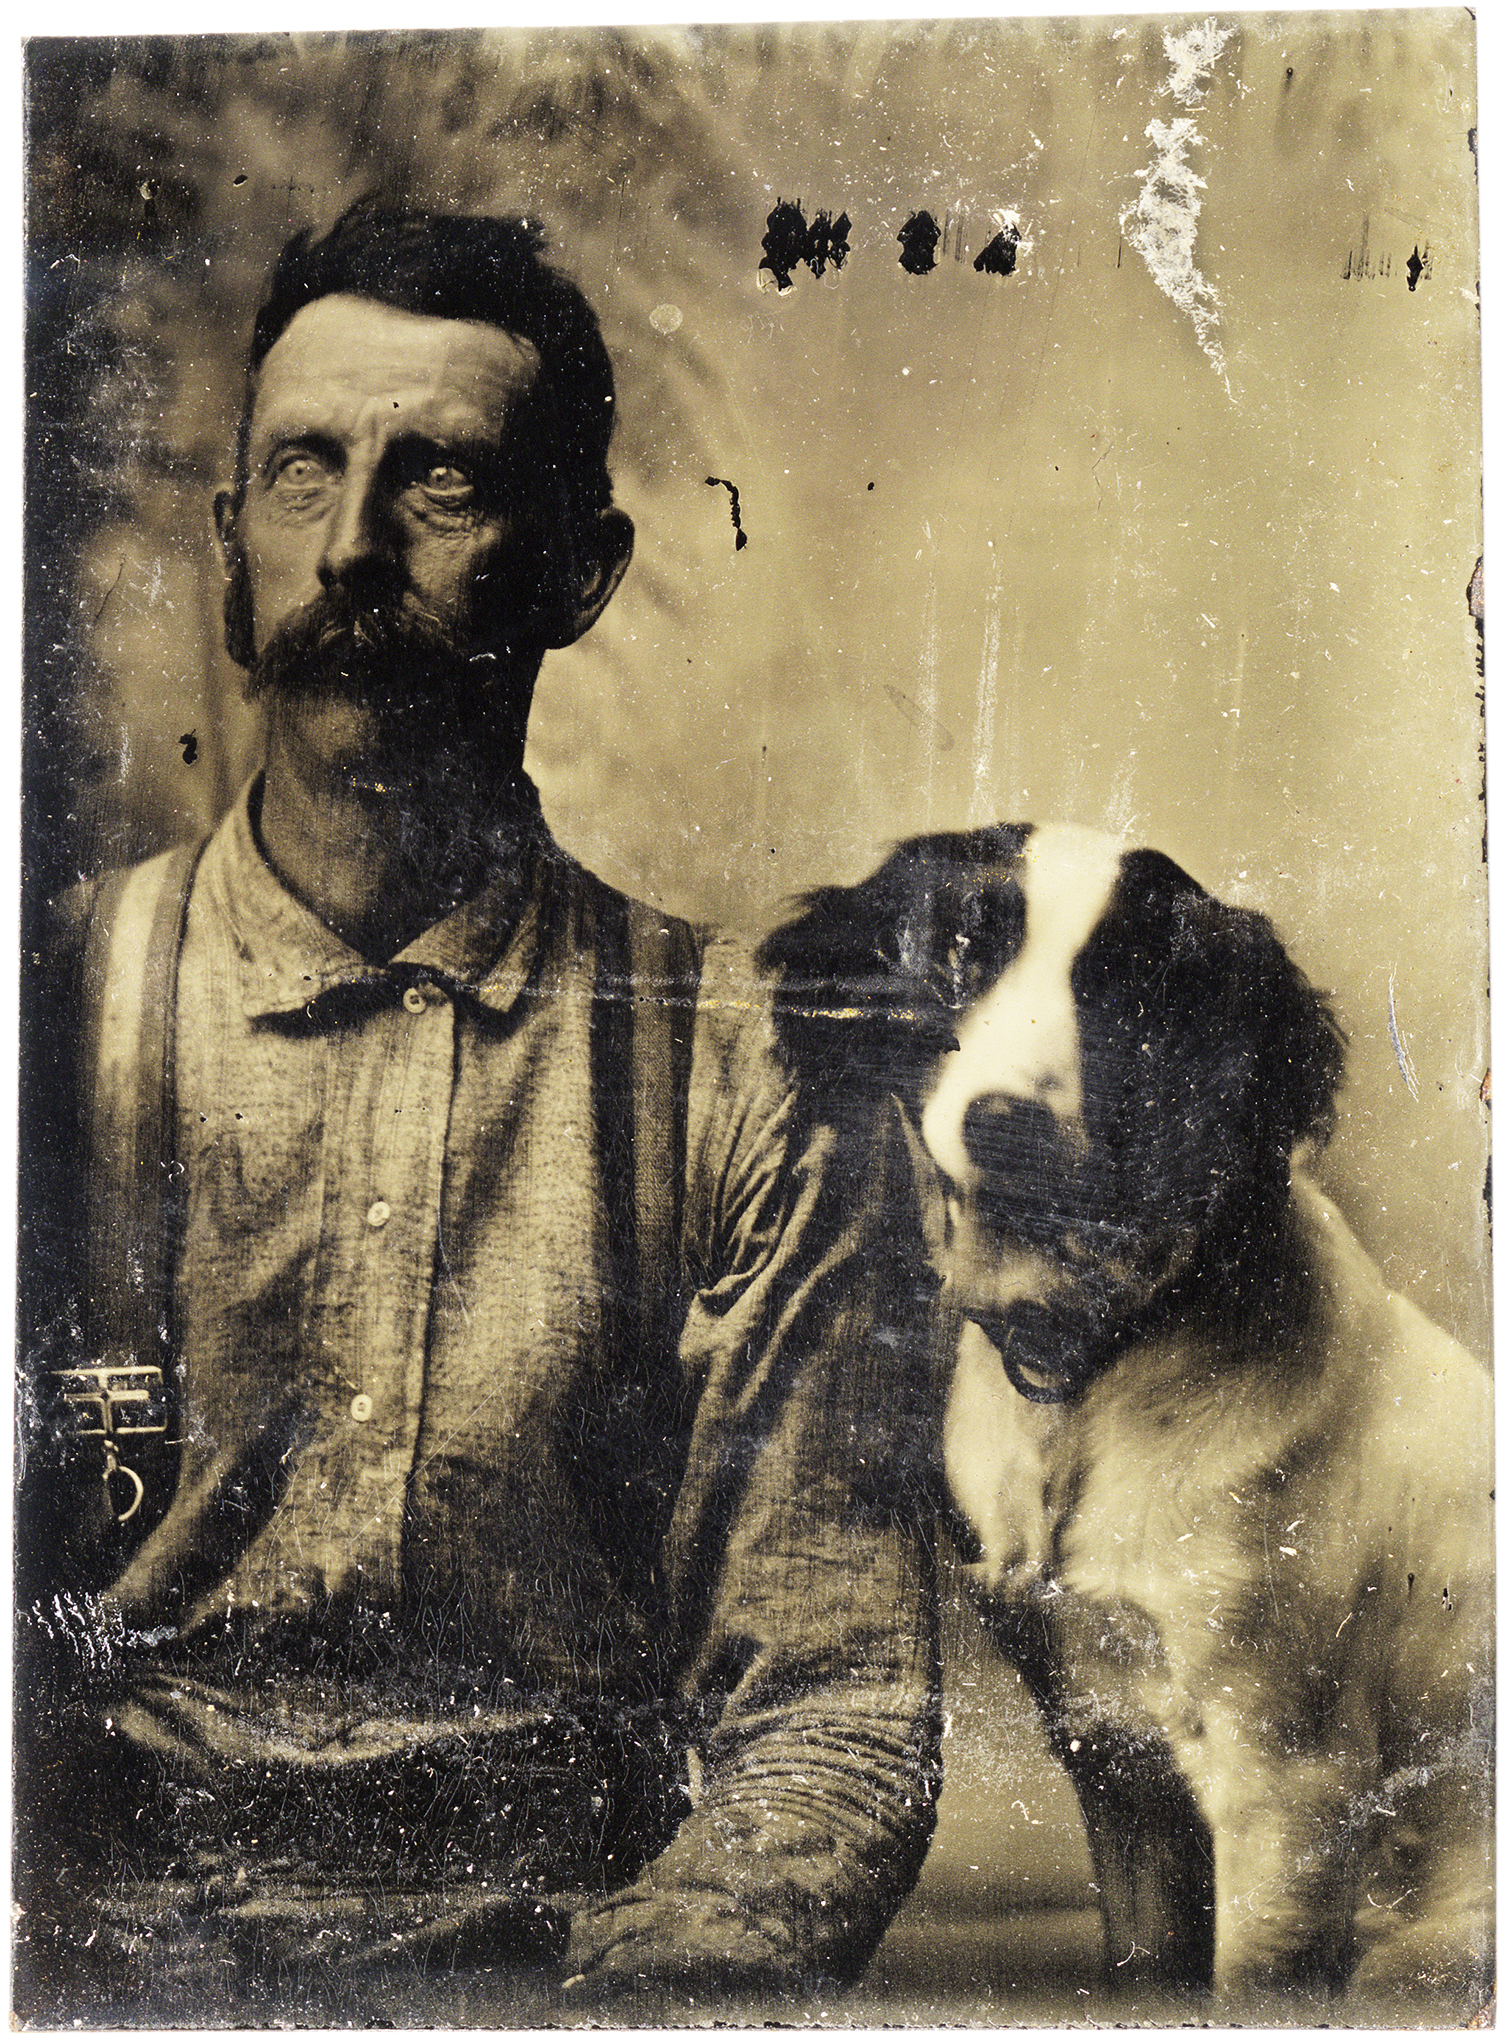 Portarit of a Man and His Dog, 2013 - LR12245